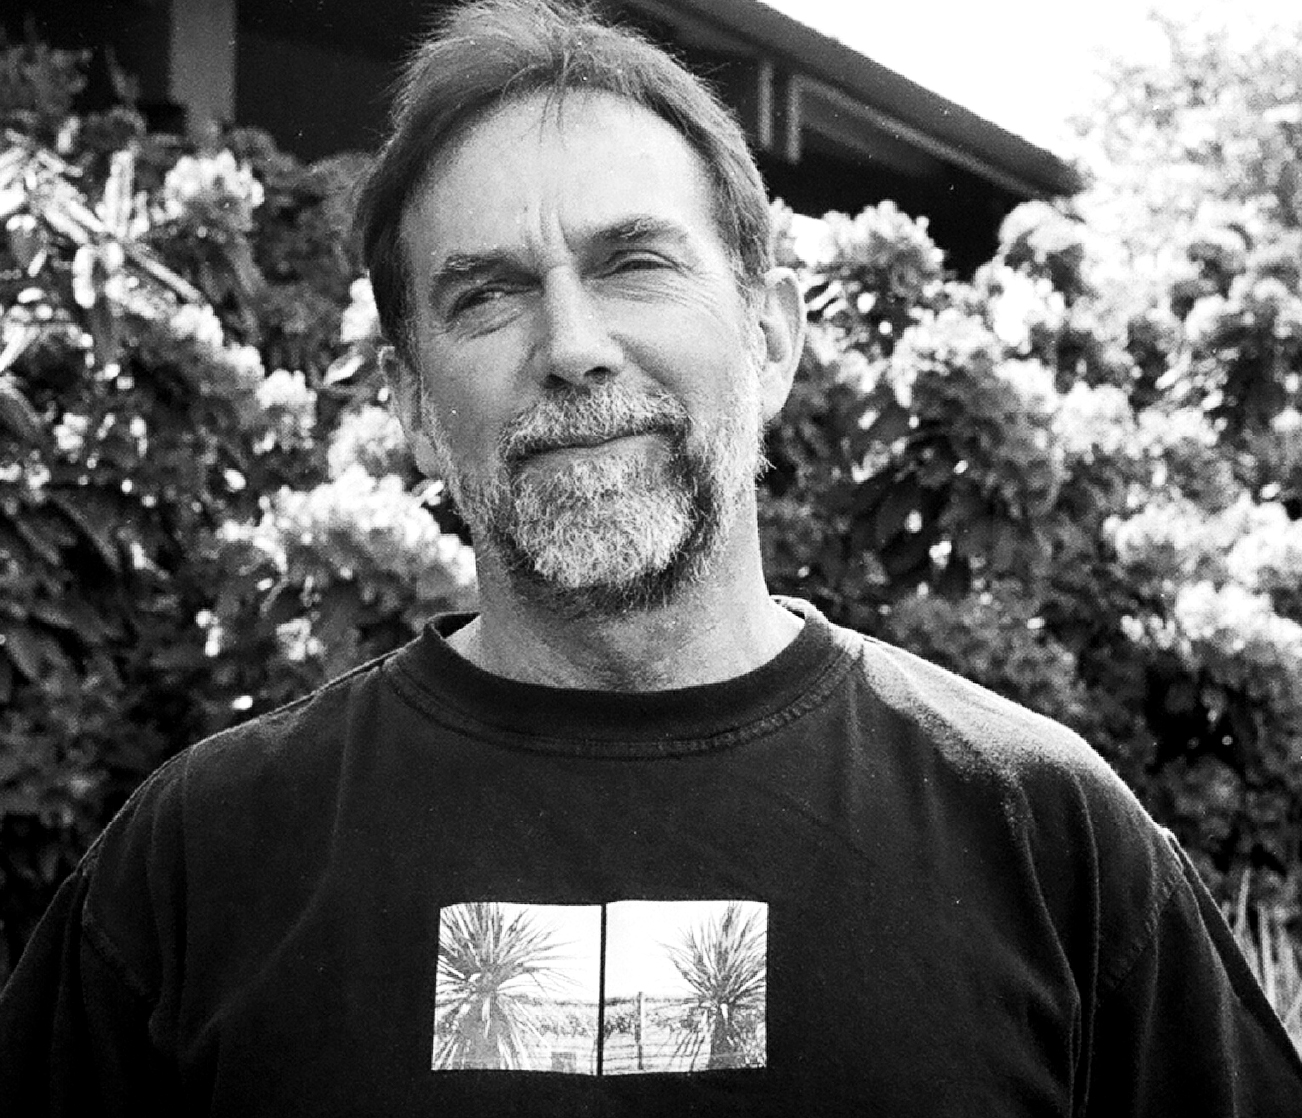 Cristom Vineyards relies on the winemaking talents of Steve Doerner. Steve has produced a top-class lineup of Oregon Pinot Noir.